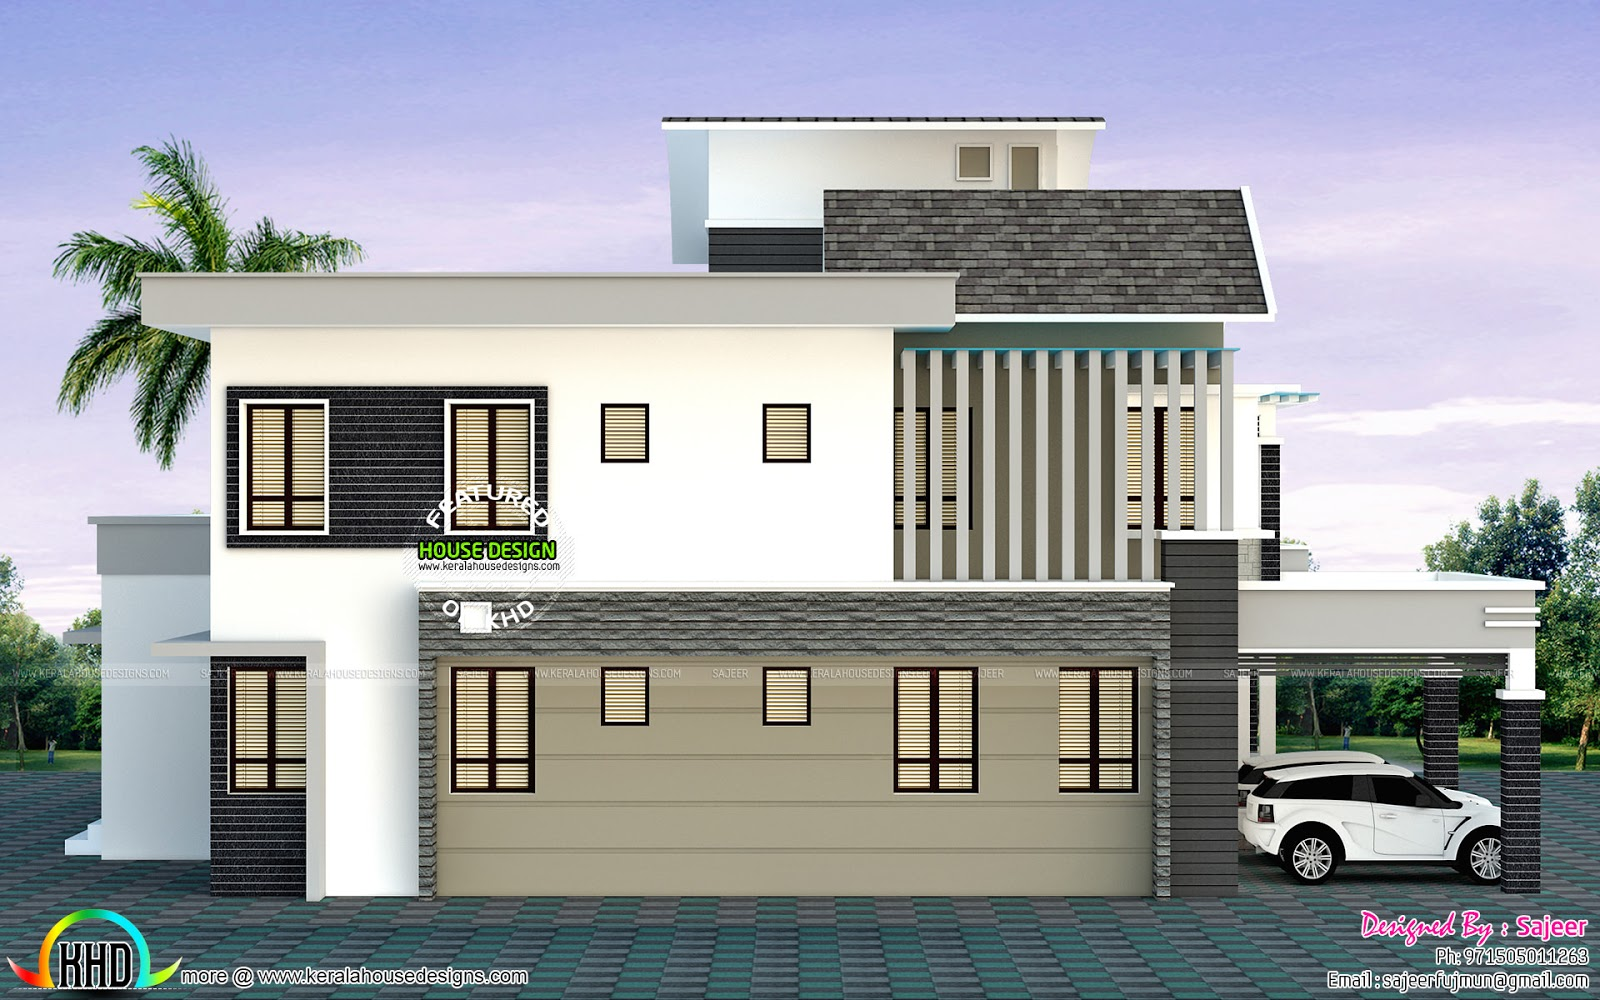 Elevation Plan And Side Views : Front left and right view of modern home kerala